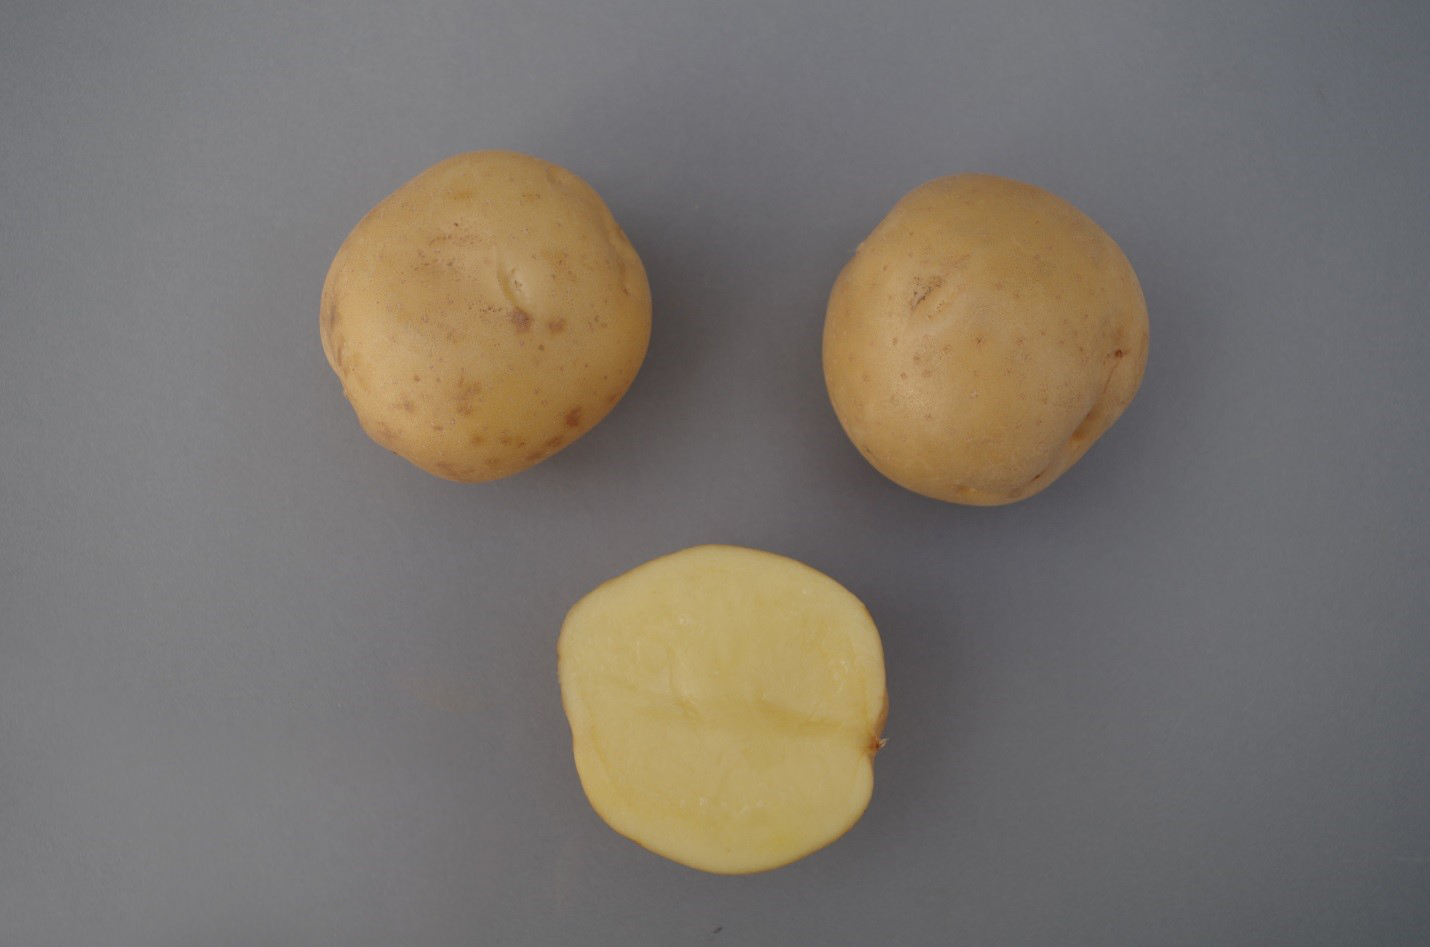 Two whole potatoes and one potato cut in half.